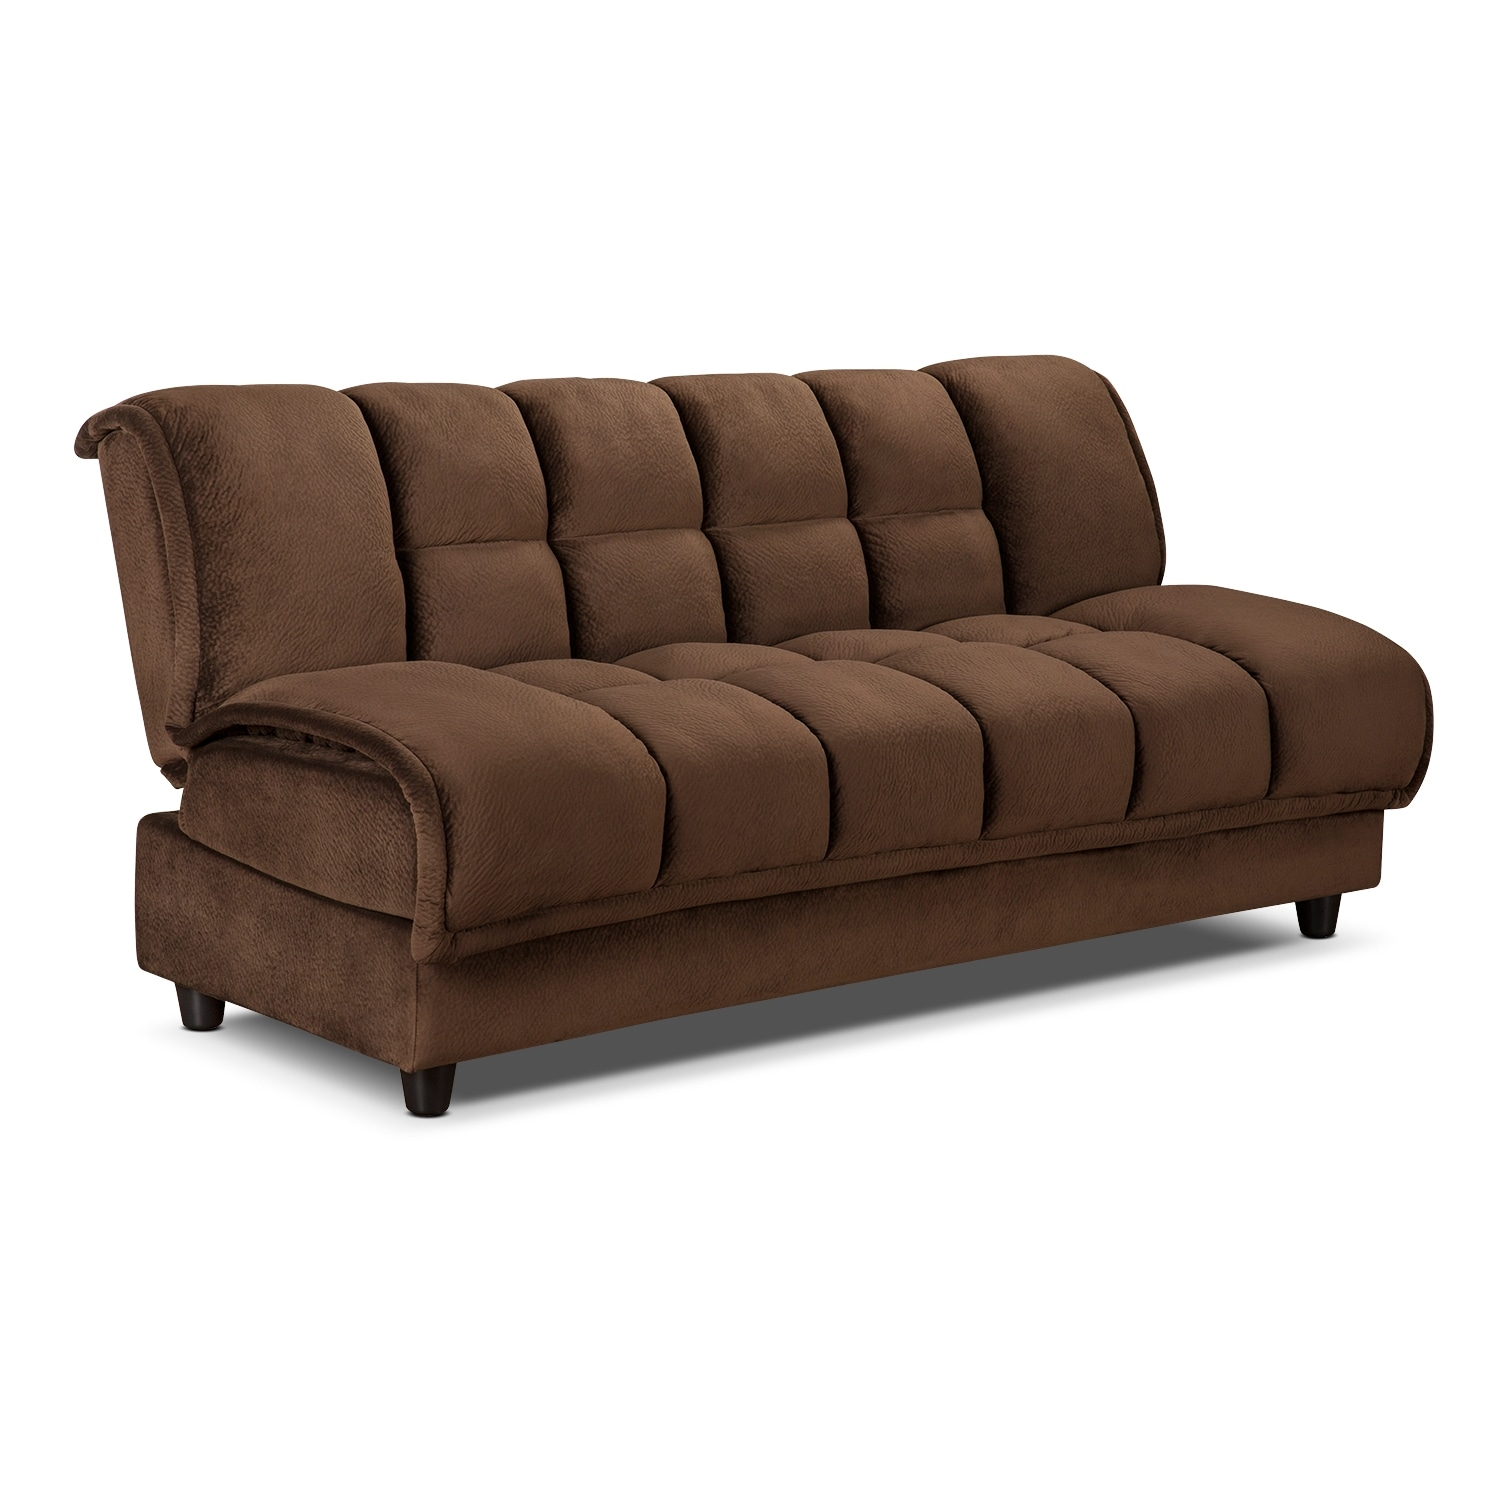 Bennett futon sofa bed espresso american signature for Sofa bed zuza